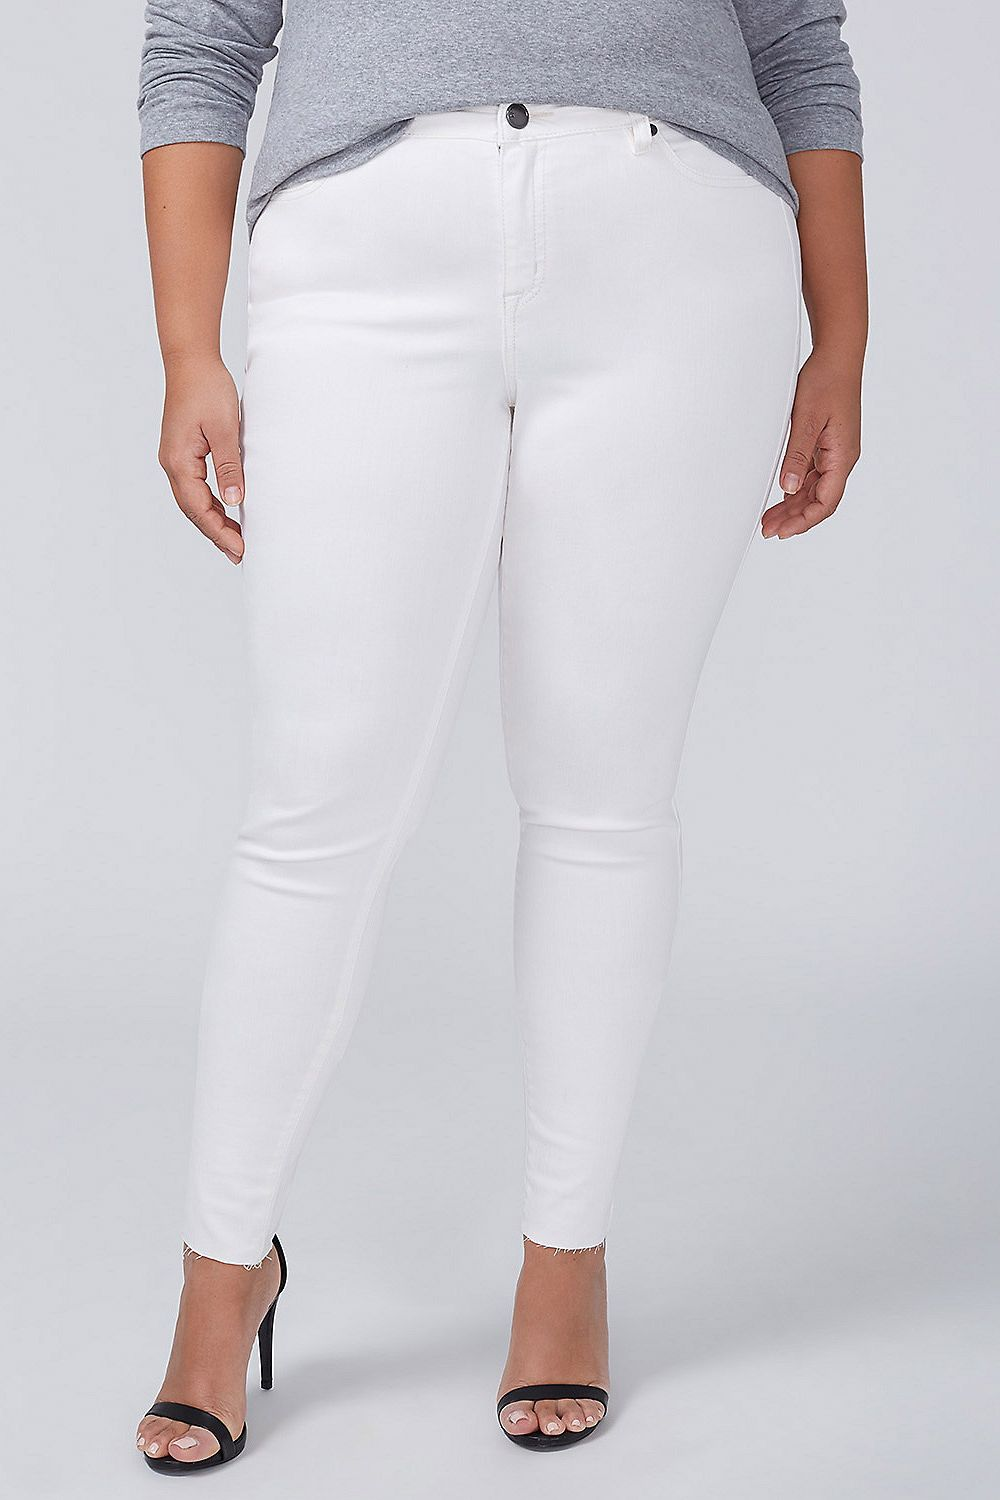 862bbd1b1b1 Lane Bryant Power Pockets Super Stretch Skinny White Ankle Jean